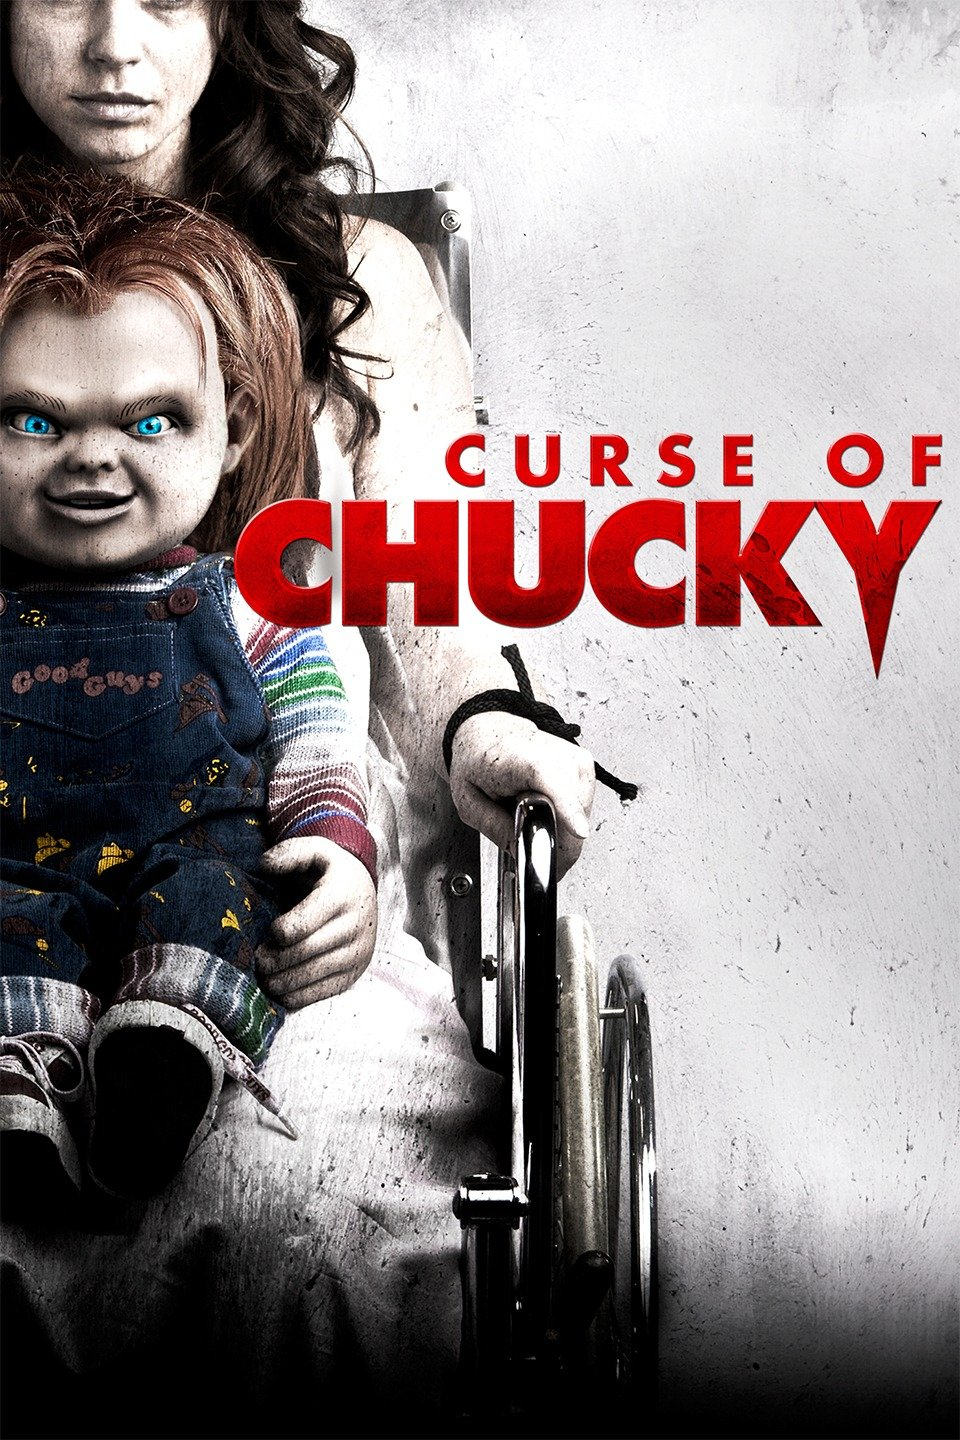 Curse of Chucky (2013) - Directed by: Don ManciniStarring: Fiona Dourif, Brad Dourif, Danielle Bisutti, A Martinez, Summer HowellRated: R for Bloody Horror Violence, and For LanguageRunning Time: 1 h 37 mTMM Score: 3 stars out of 5STRENGTHS: Tone, Directing, Story Connections, Practical EffectsWEAKNESSES: Exposition Dumps, Acting, Some Special Effects